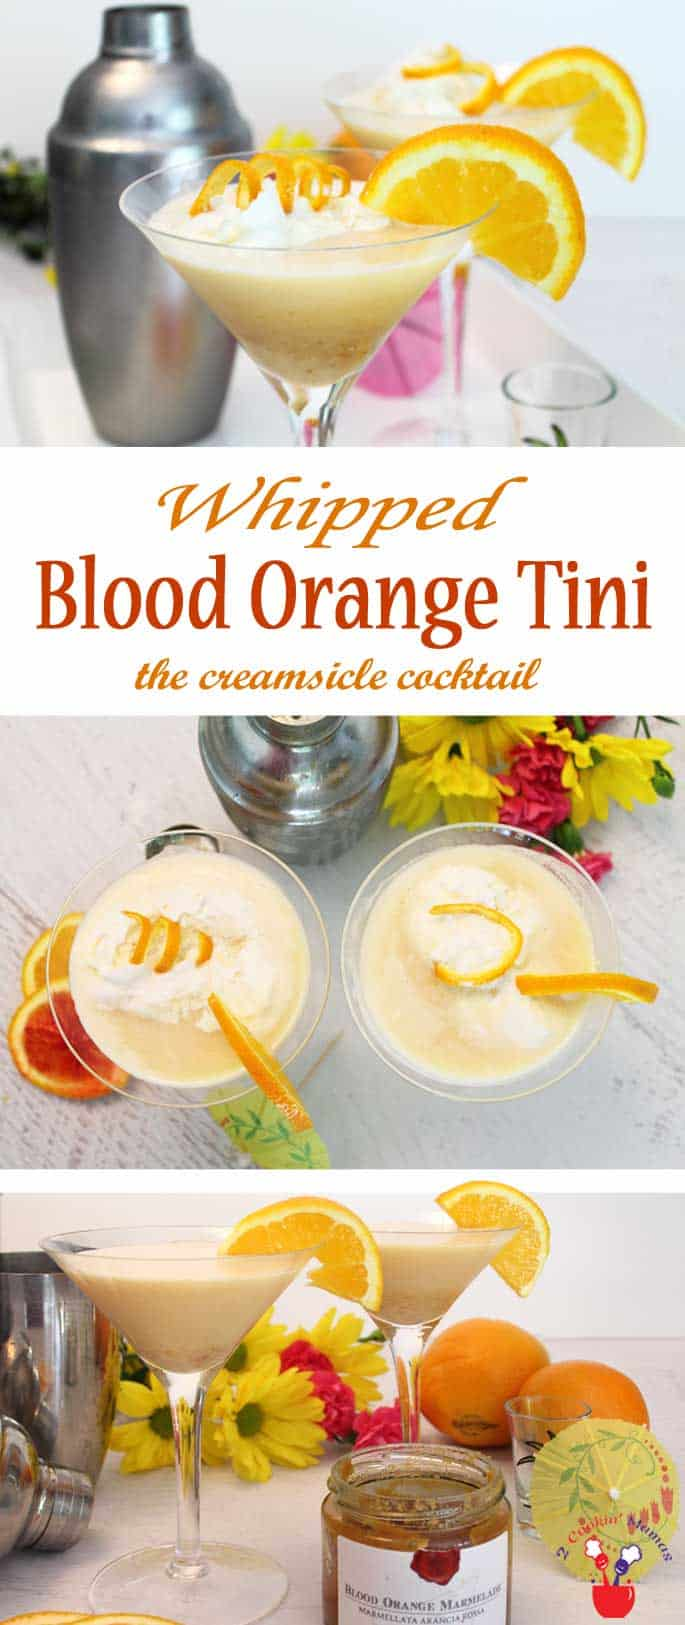 Whipped Blood Orange Tini | 2 Cookin Mamas Our Whipped Blood Orange Tini tastes just like an ice cold creamsicle. A creamy, summery cocktail combo of vodka, blood orange marmalade & whipped cream.